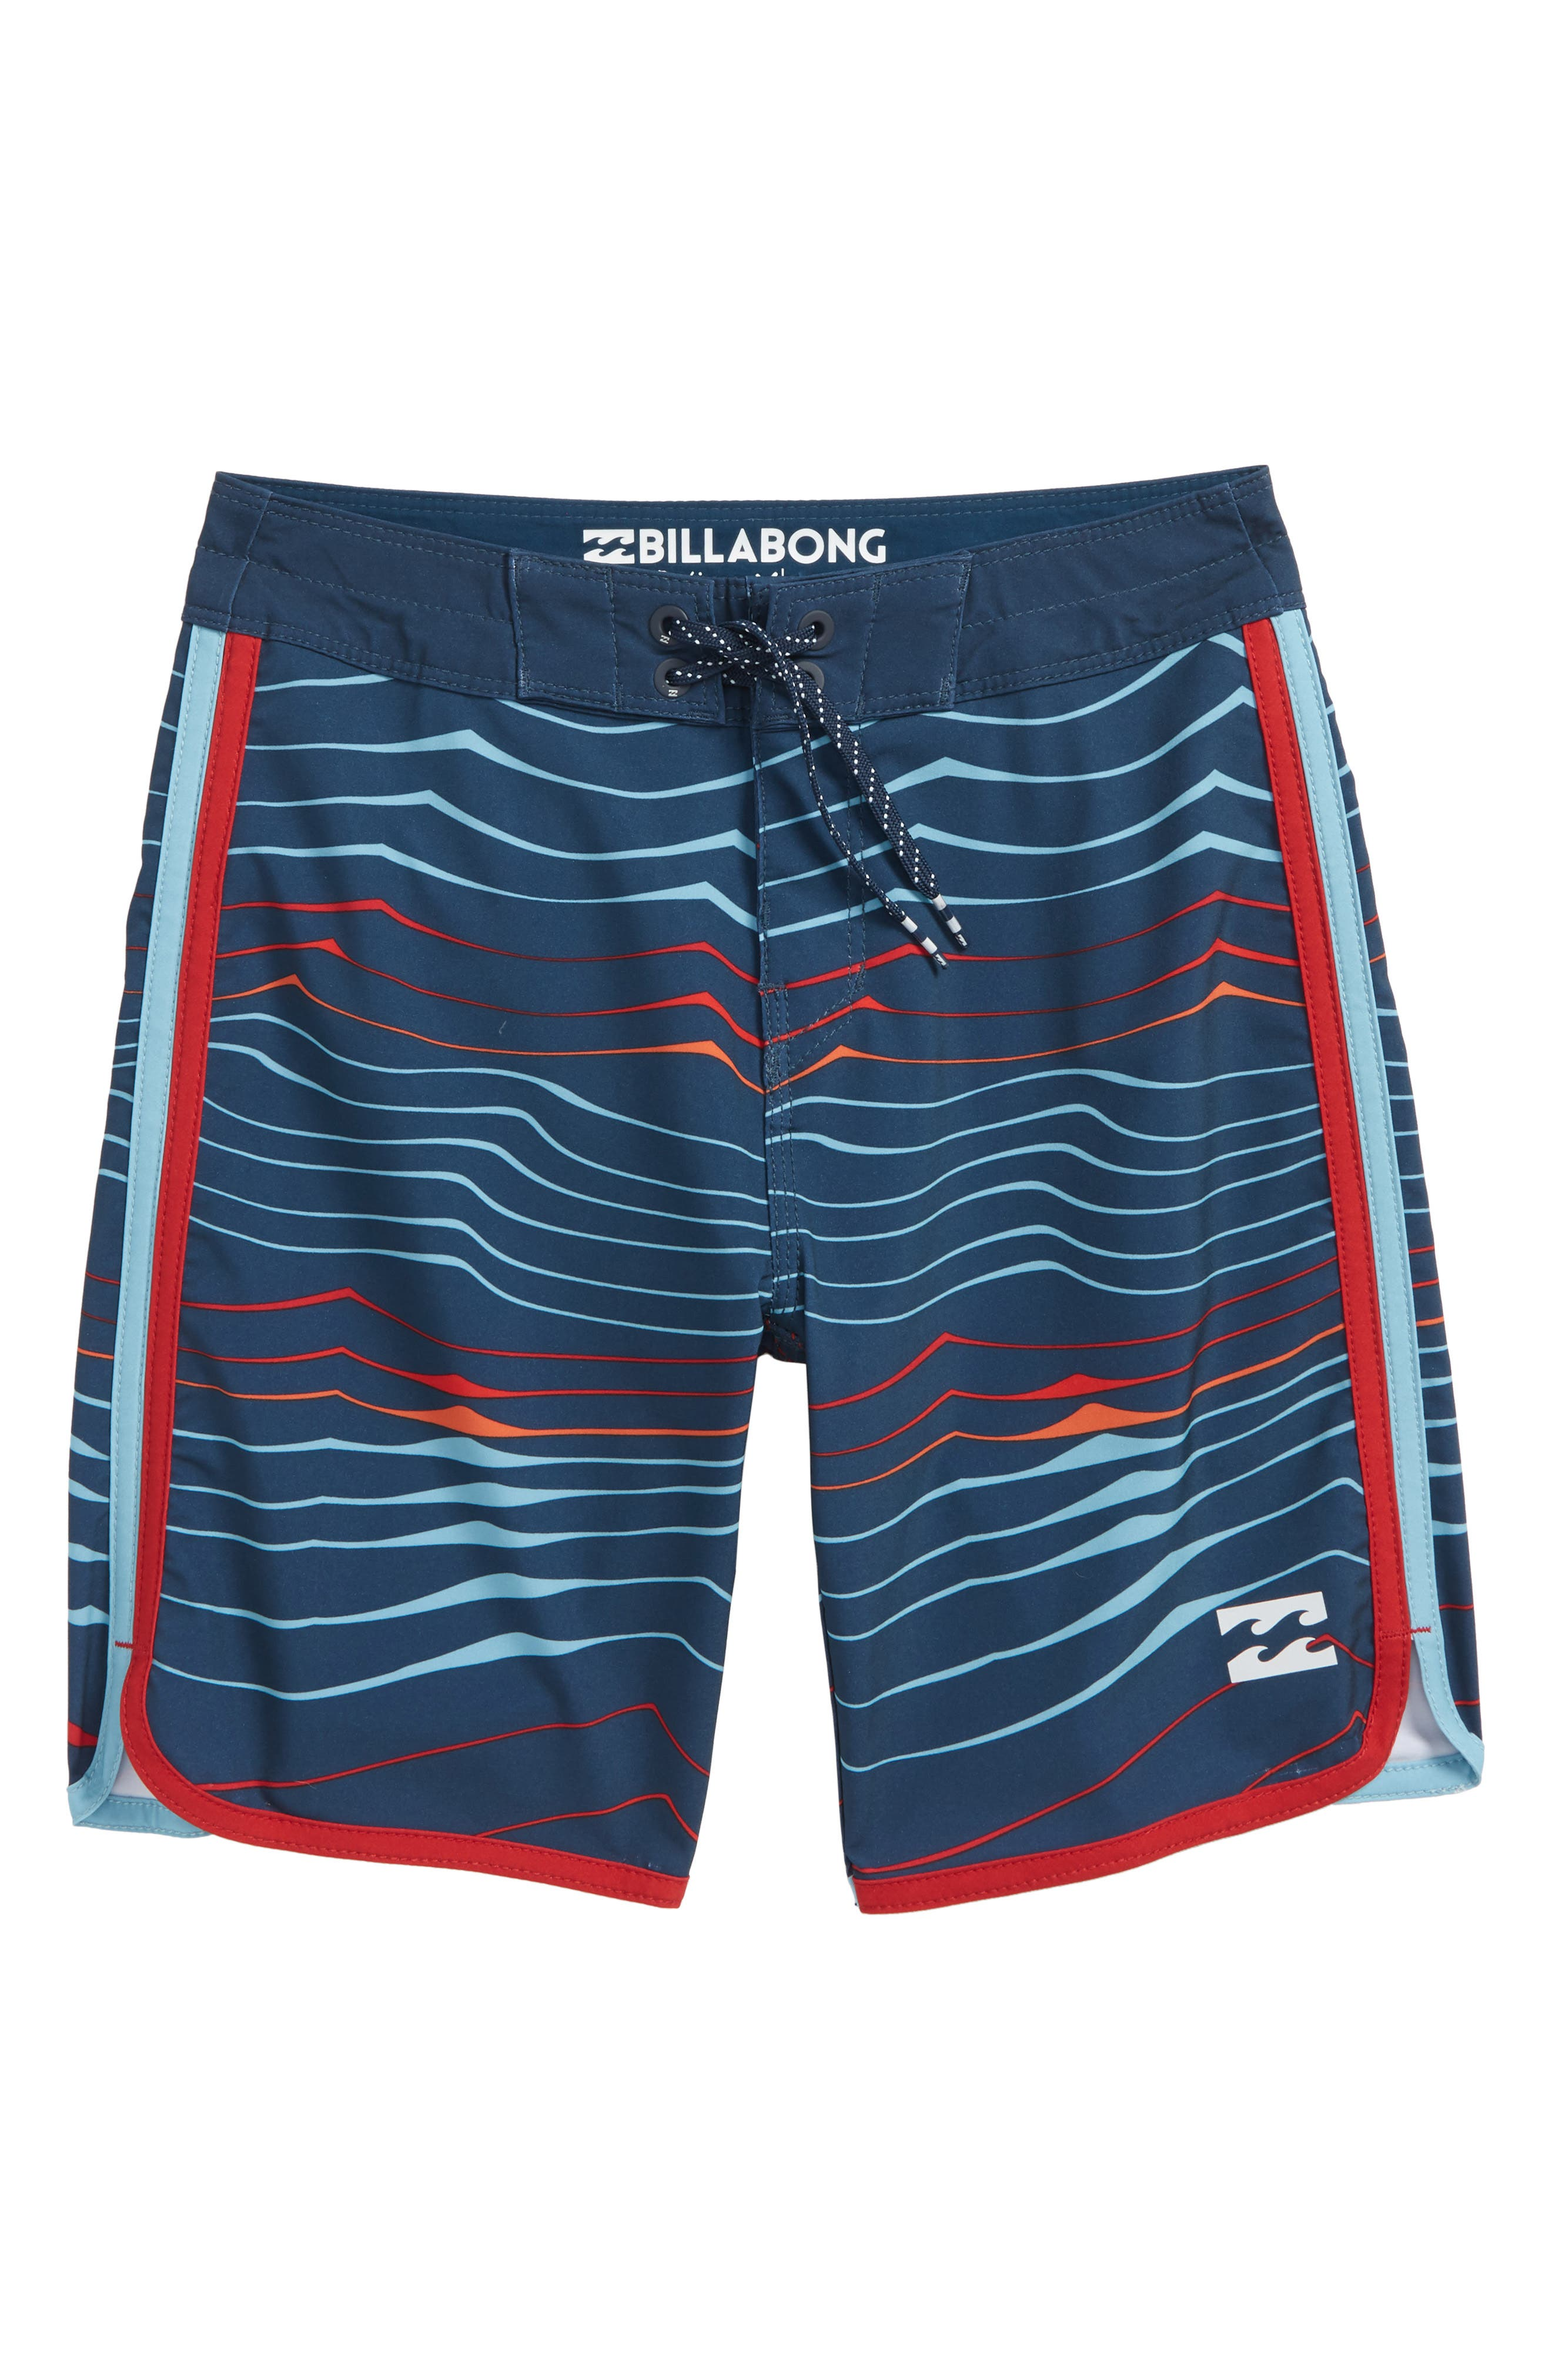 73 X Line Up Board Shorts,                         Main,                         color, Navy